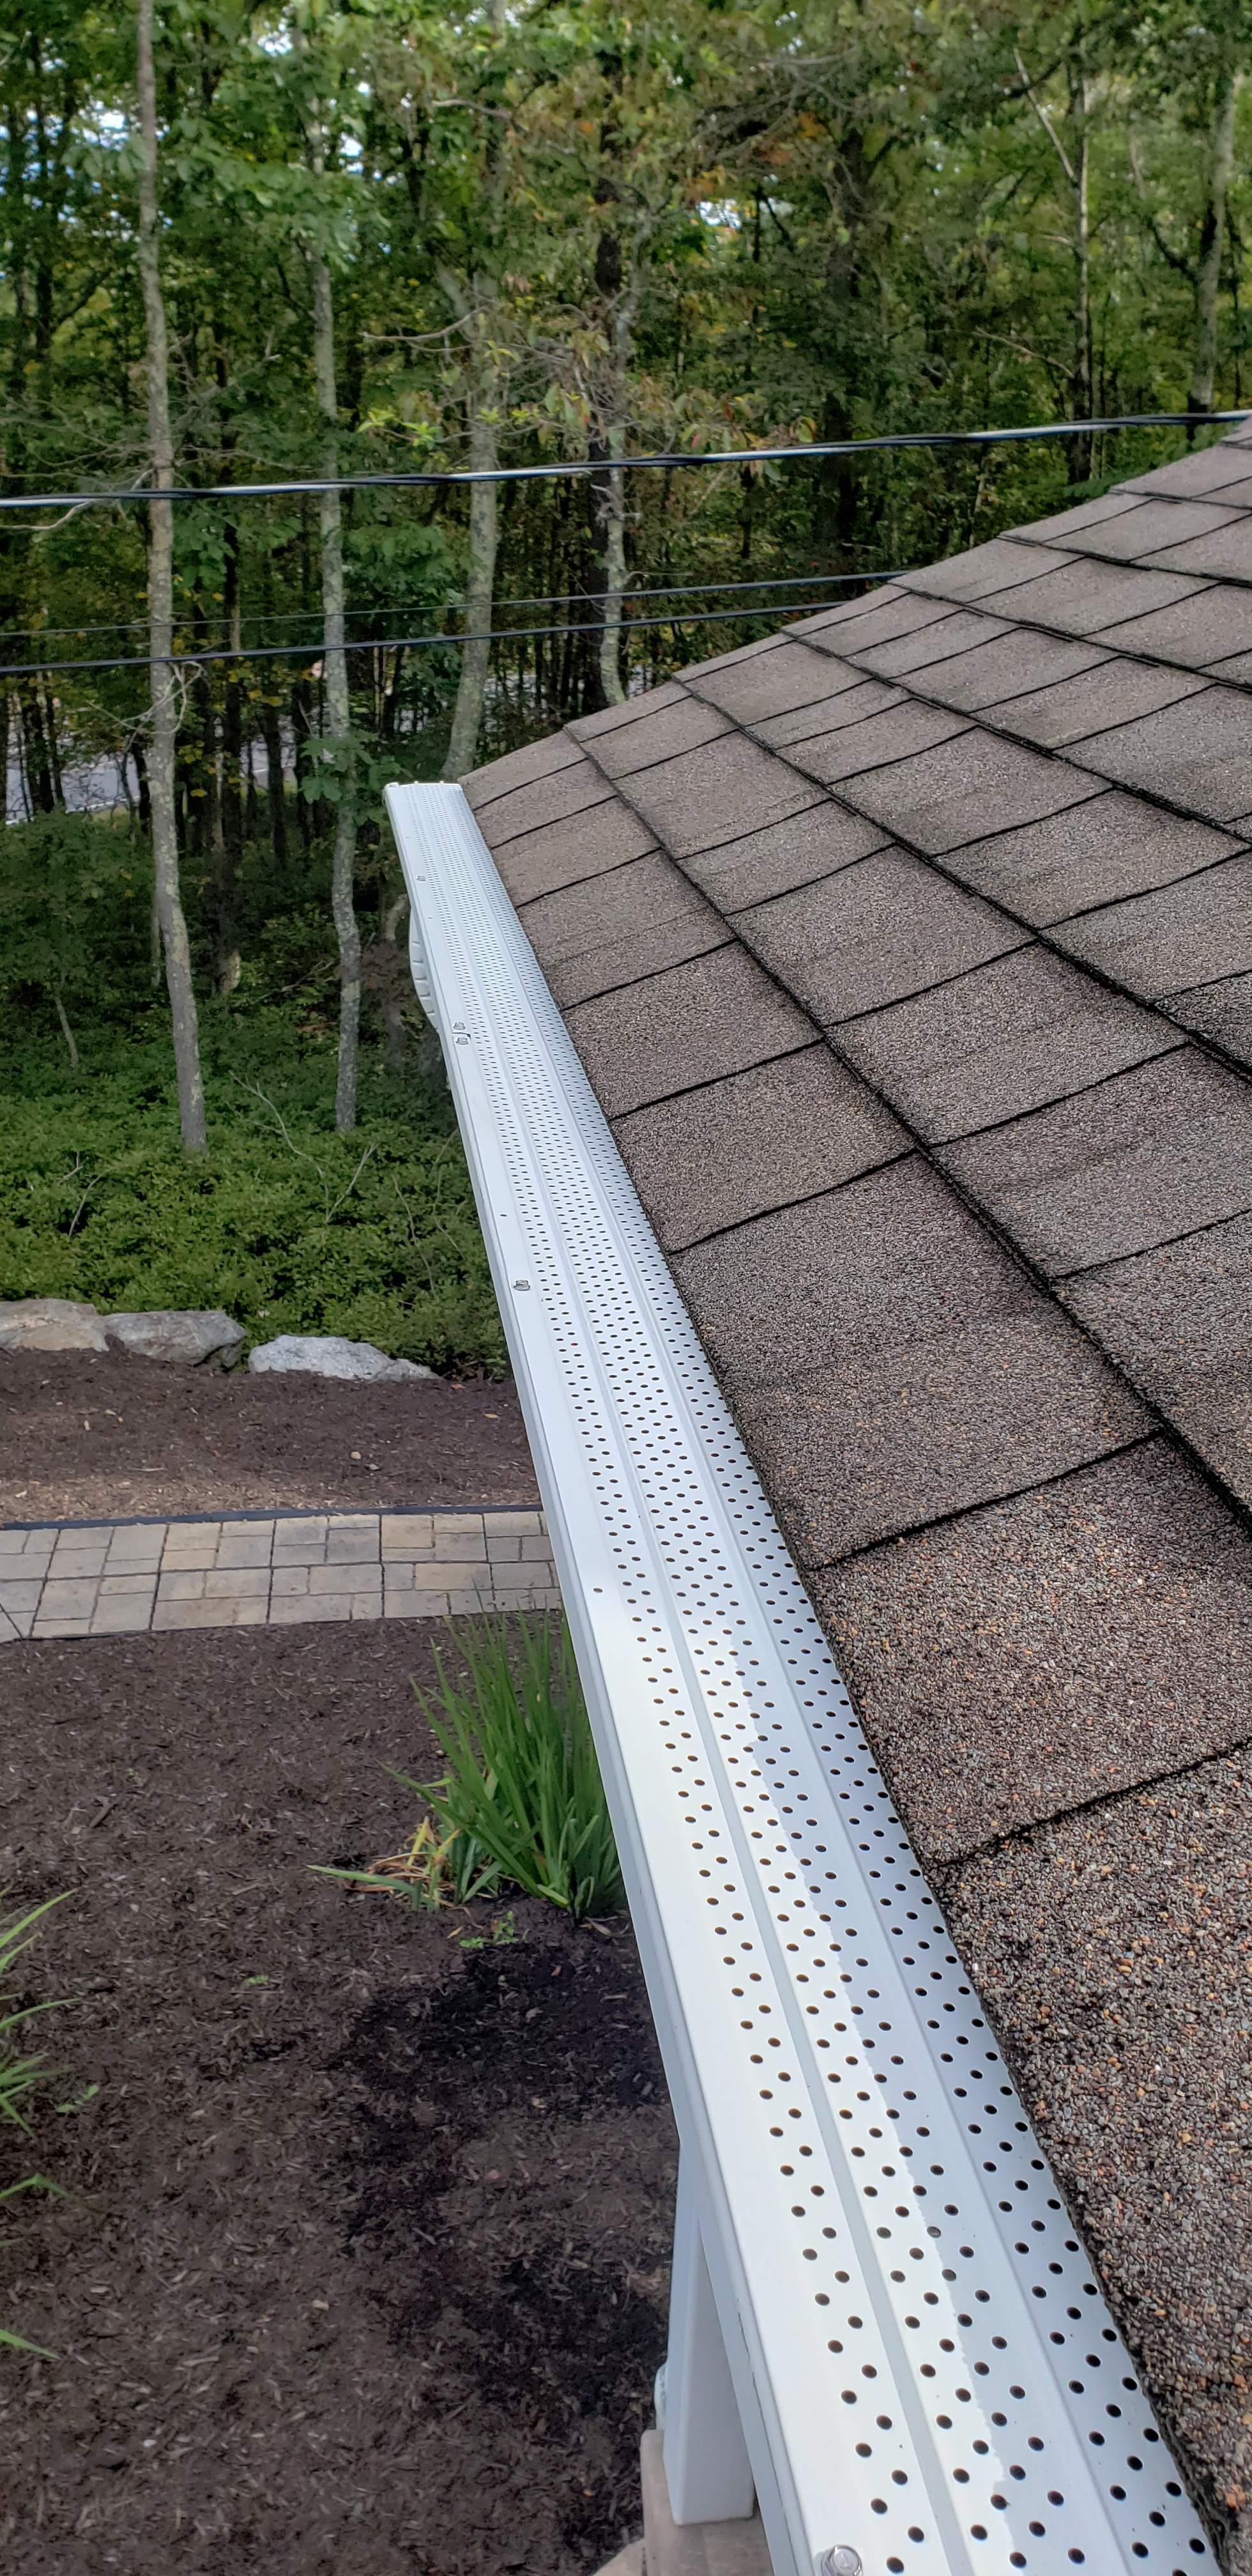 White aluminum gutter guards